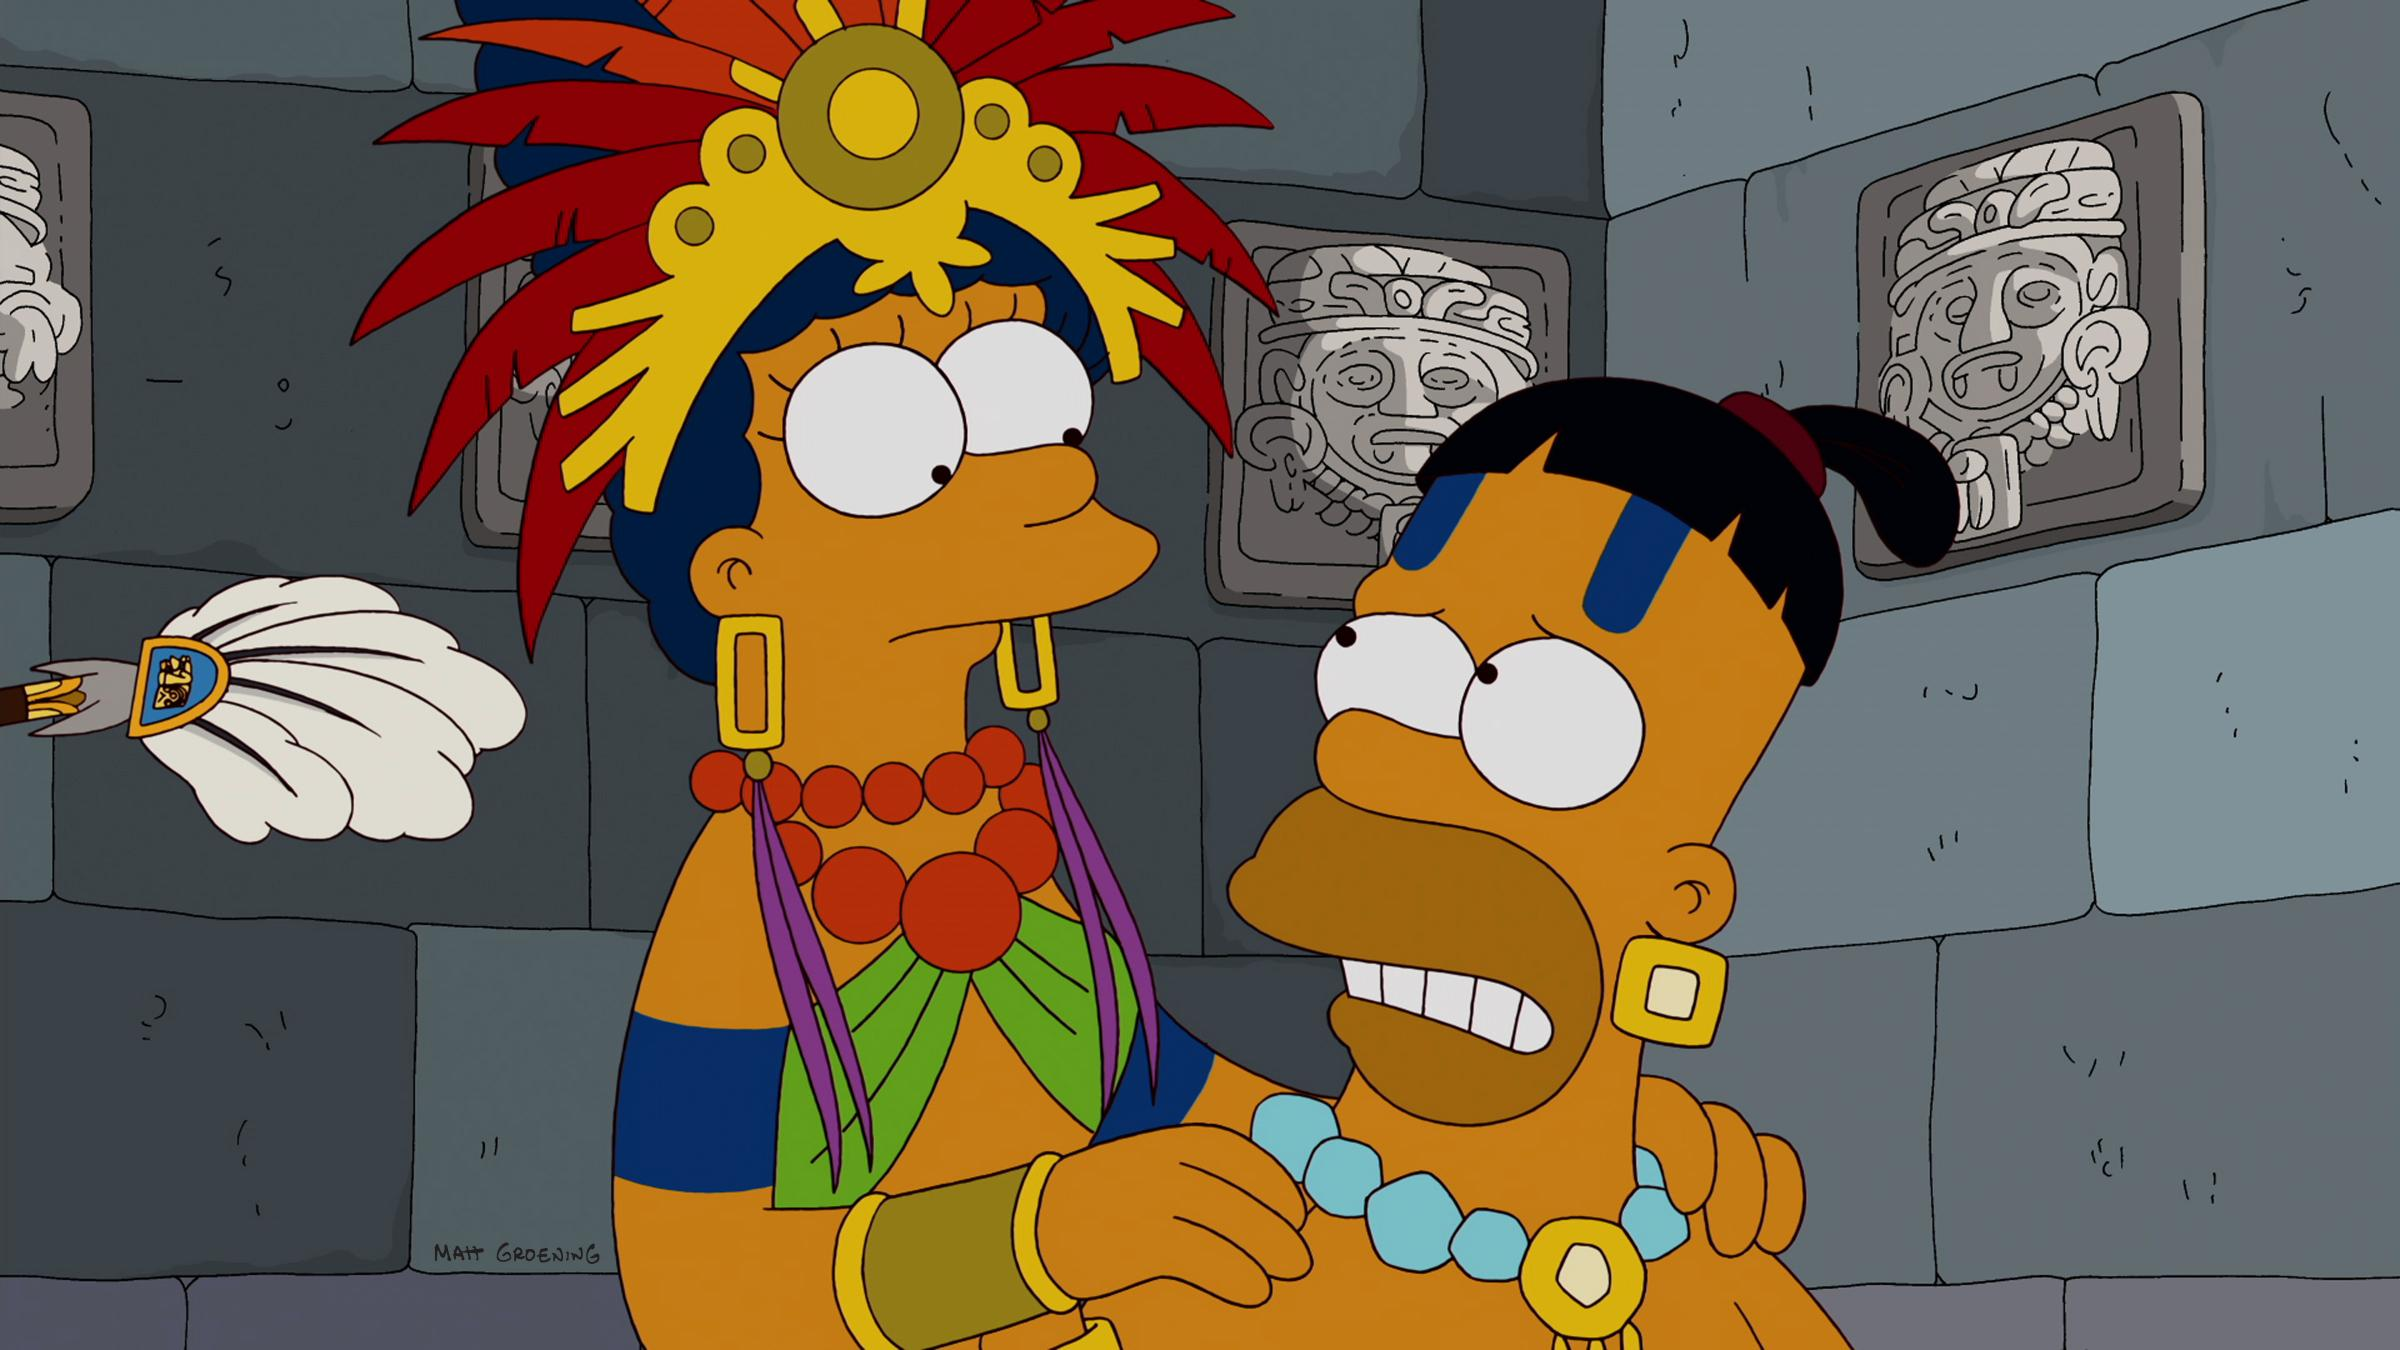 latino culture meets u.s. television for halloween